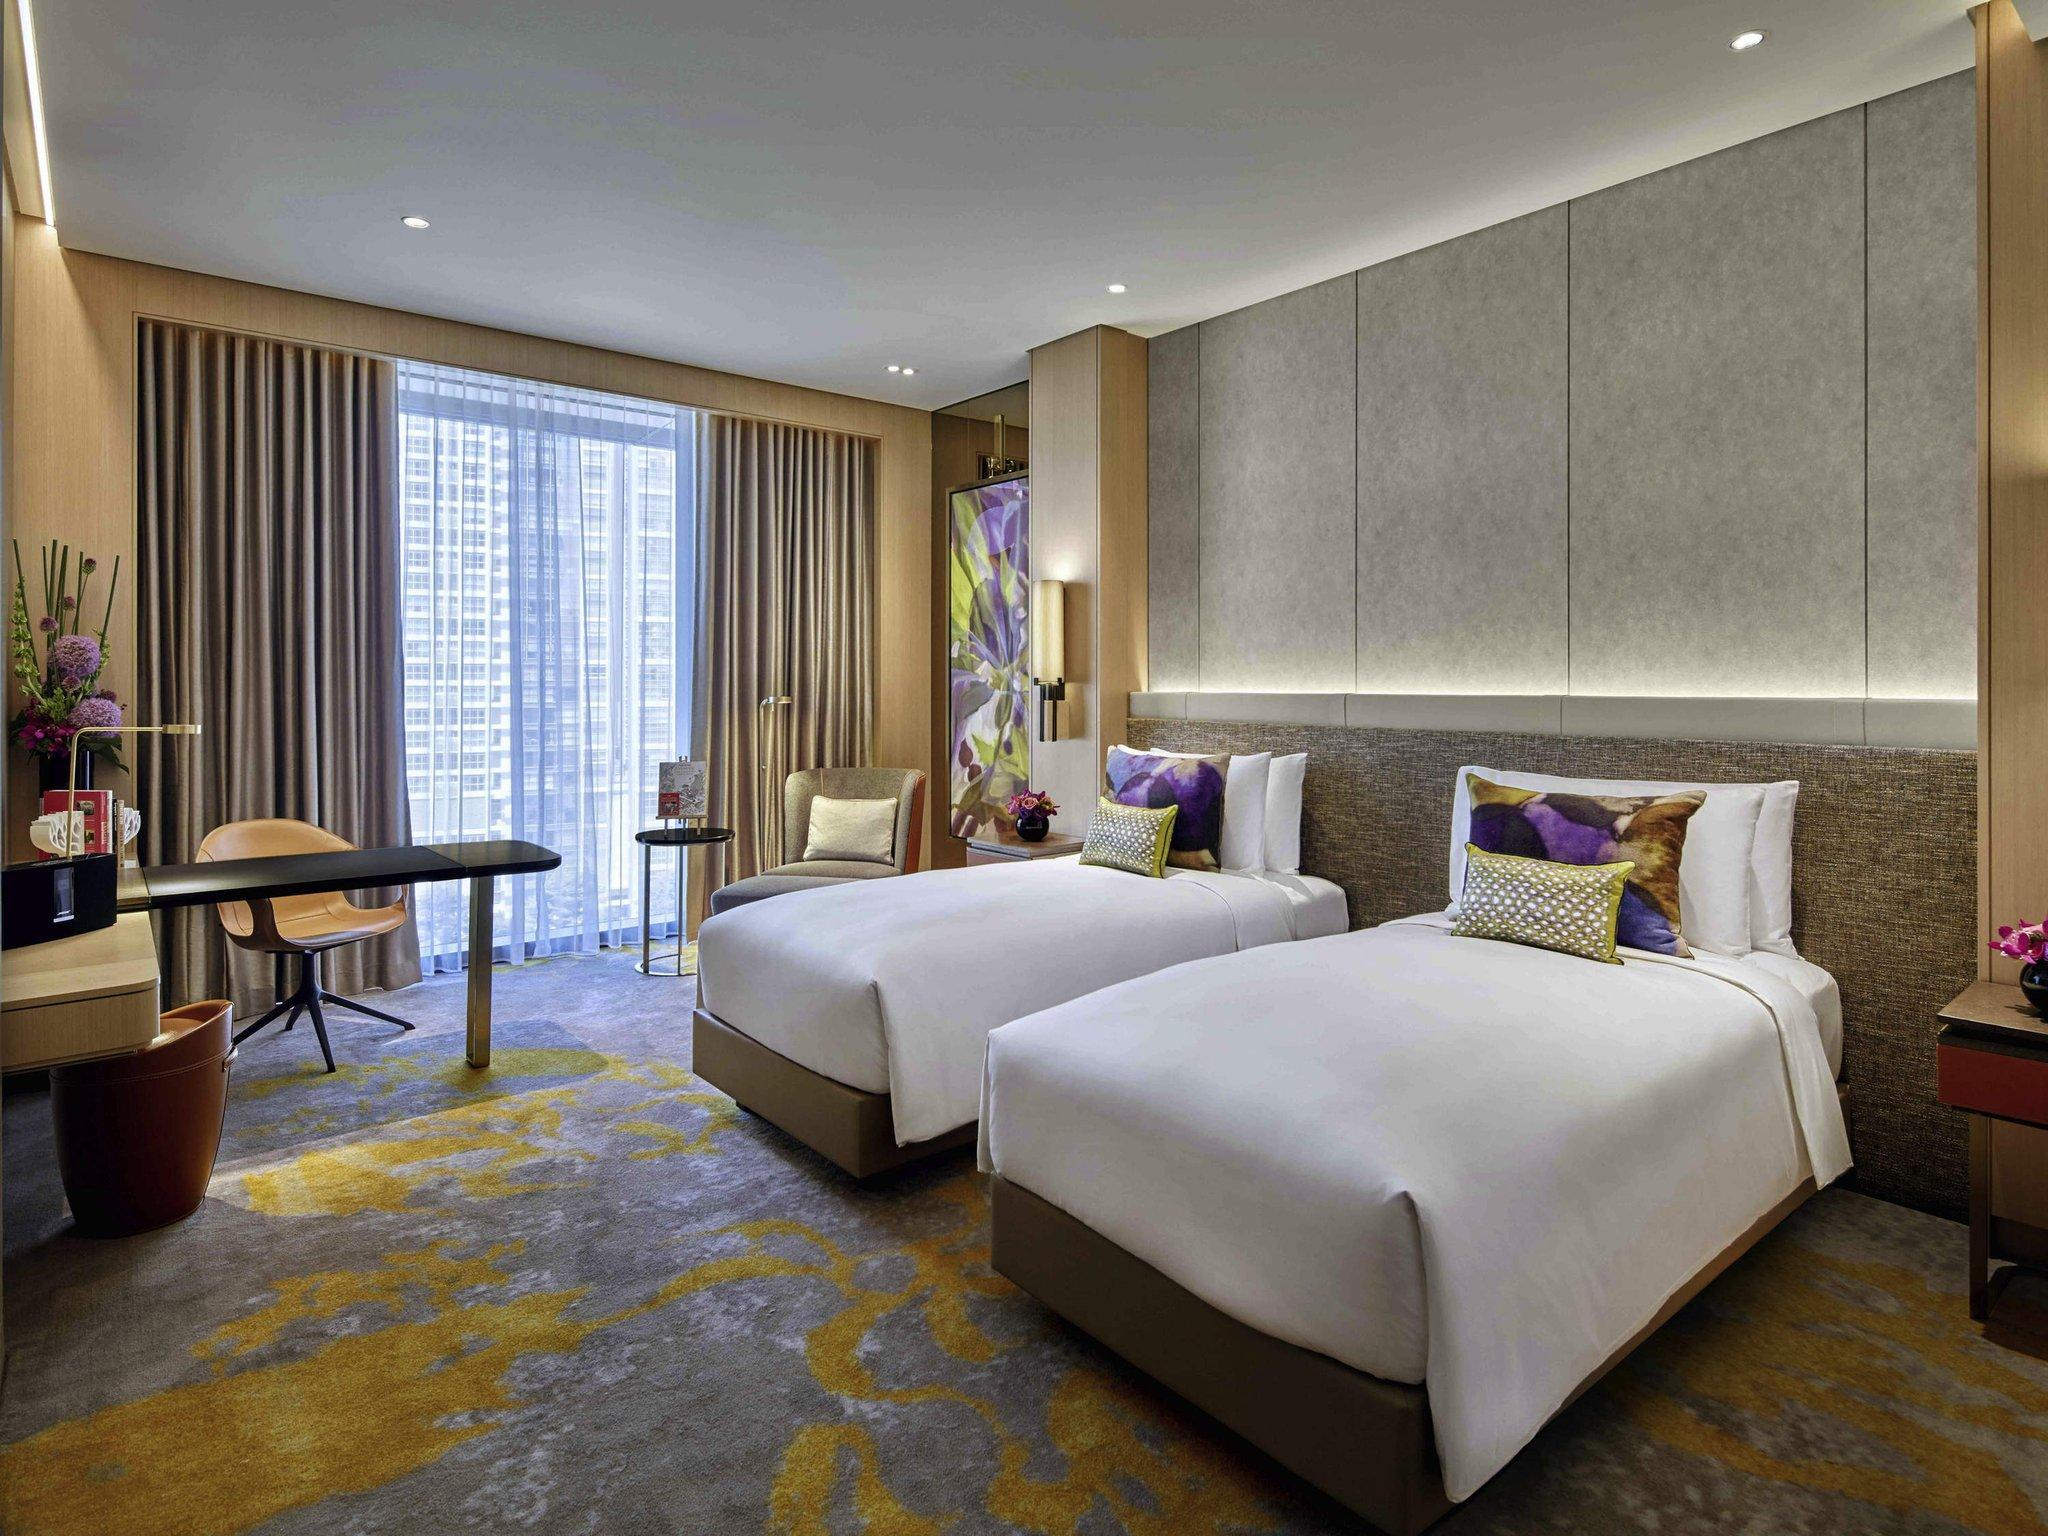 Luxury Premium Room Twin Beds, Premium Services Included